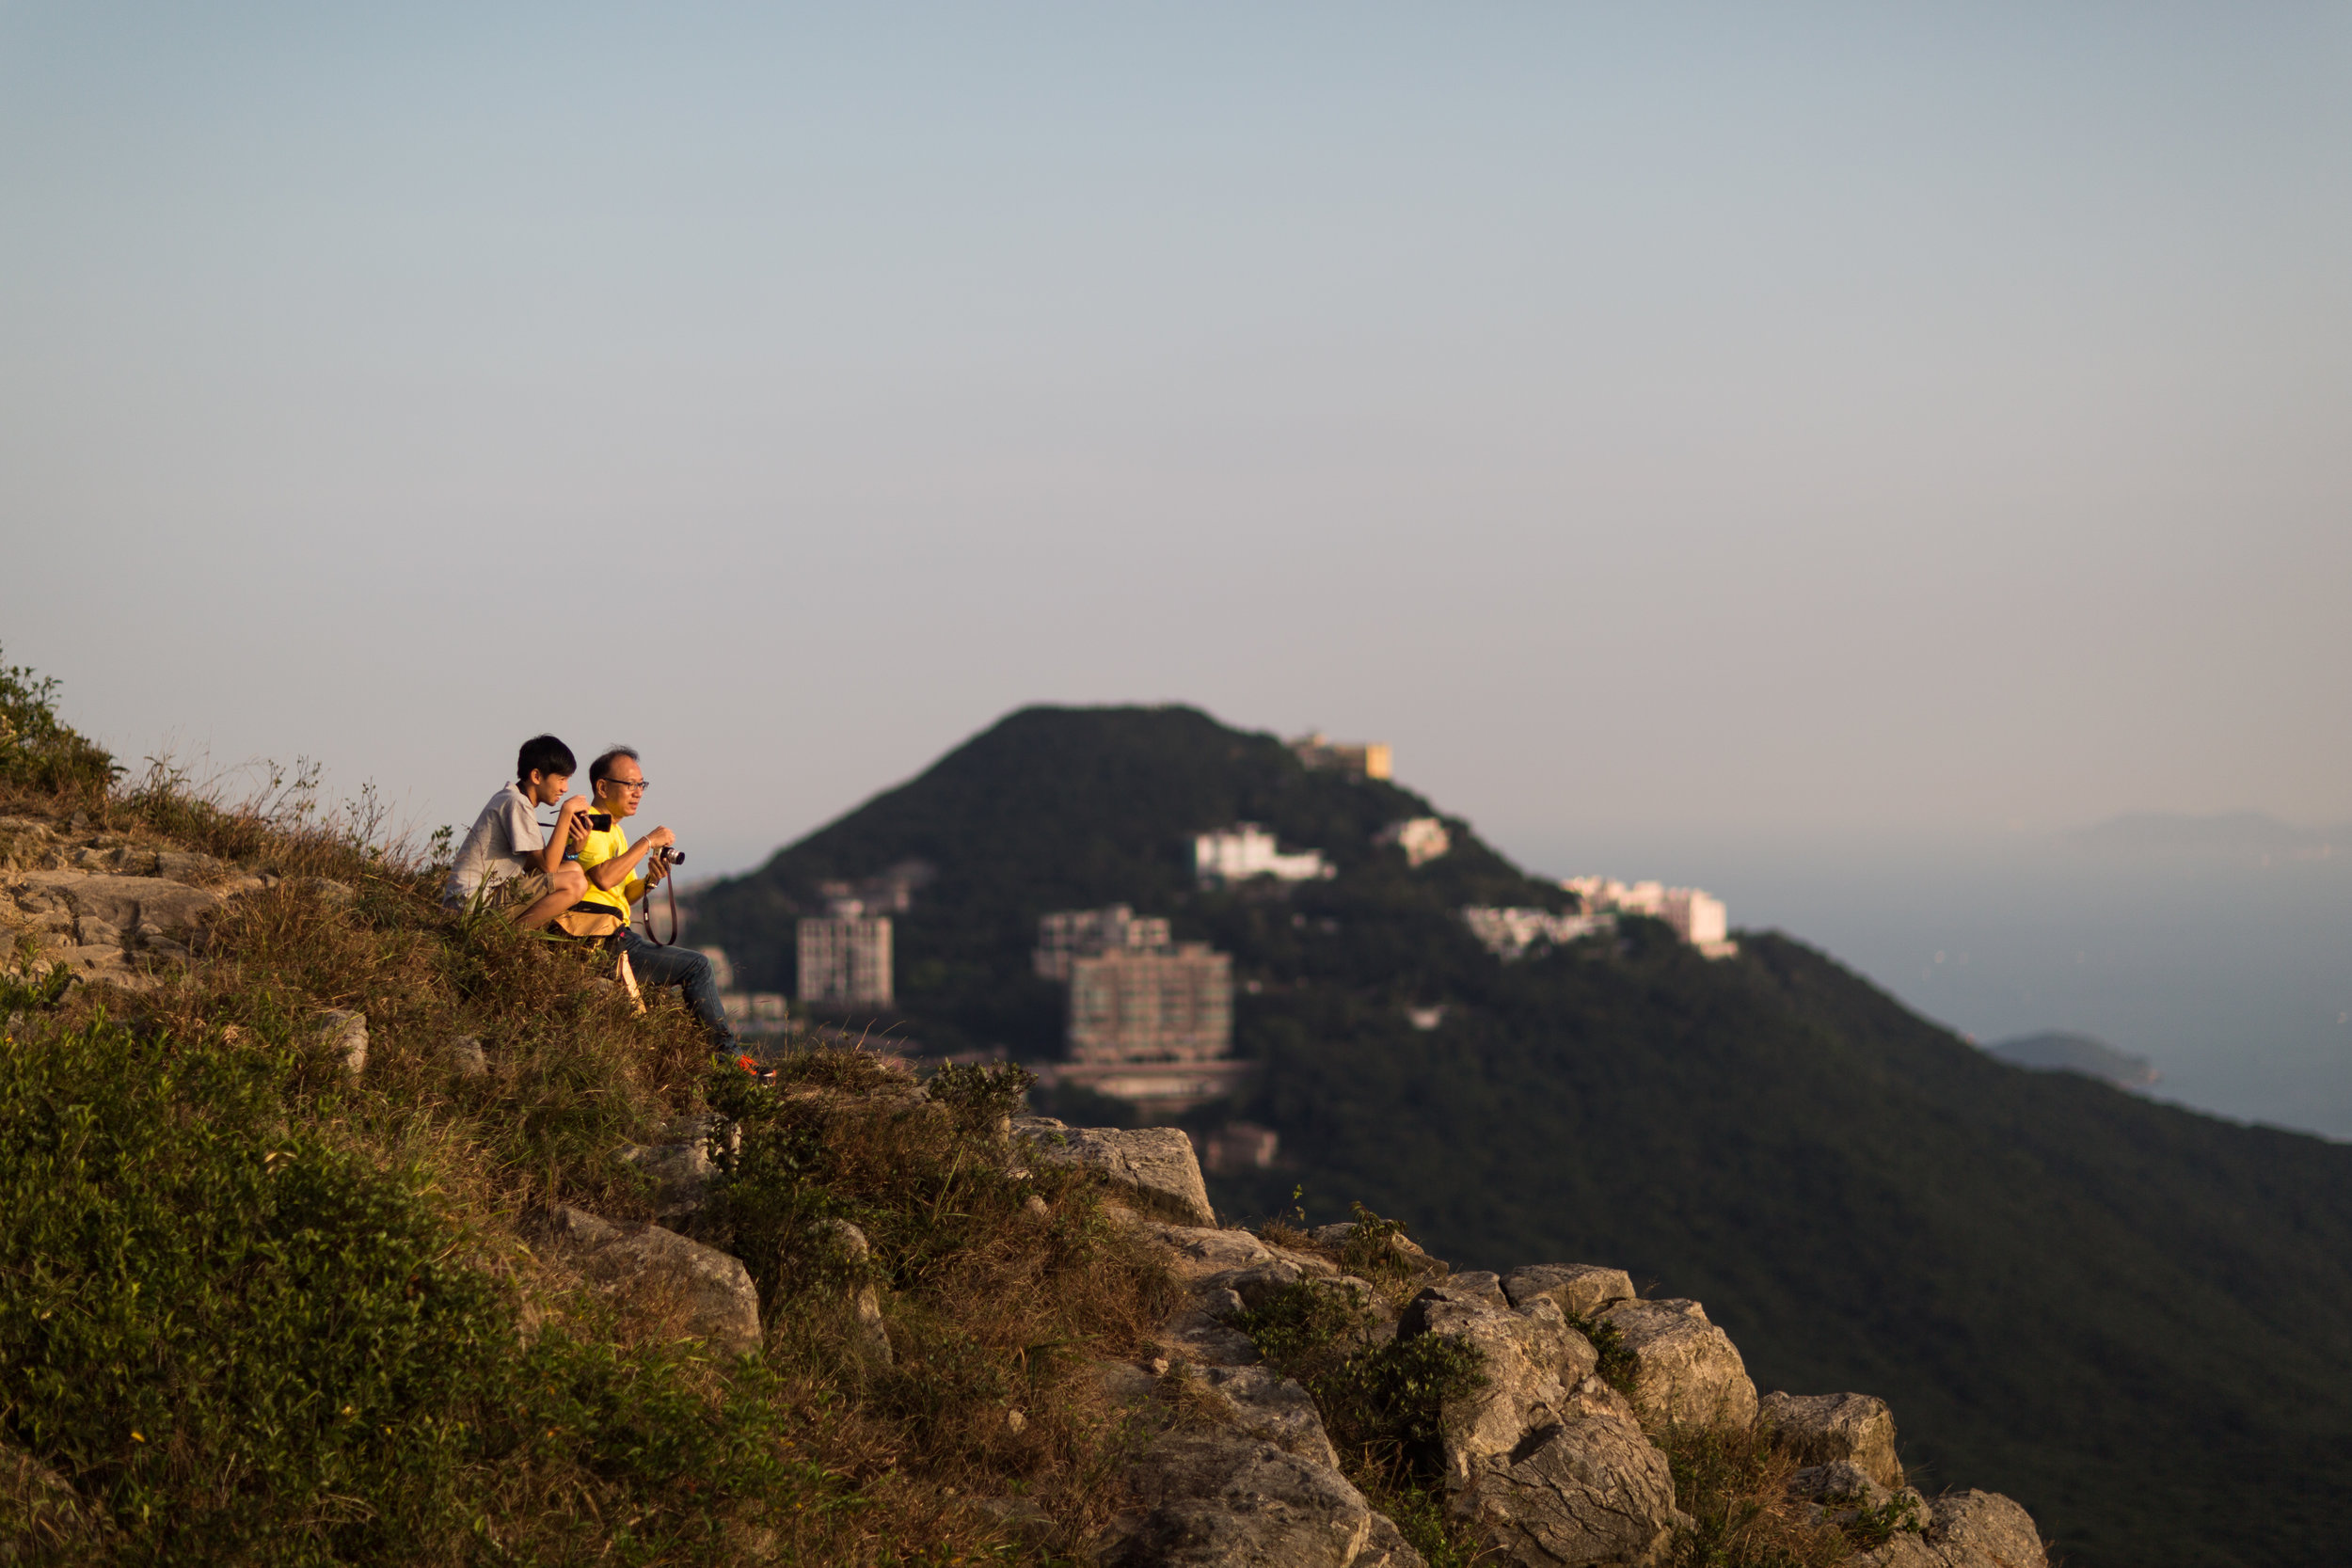 A father and son photographing the evening at High West in Hong Kong